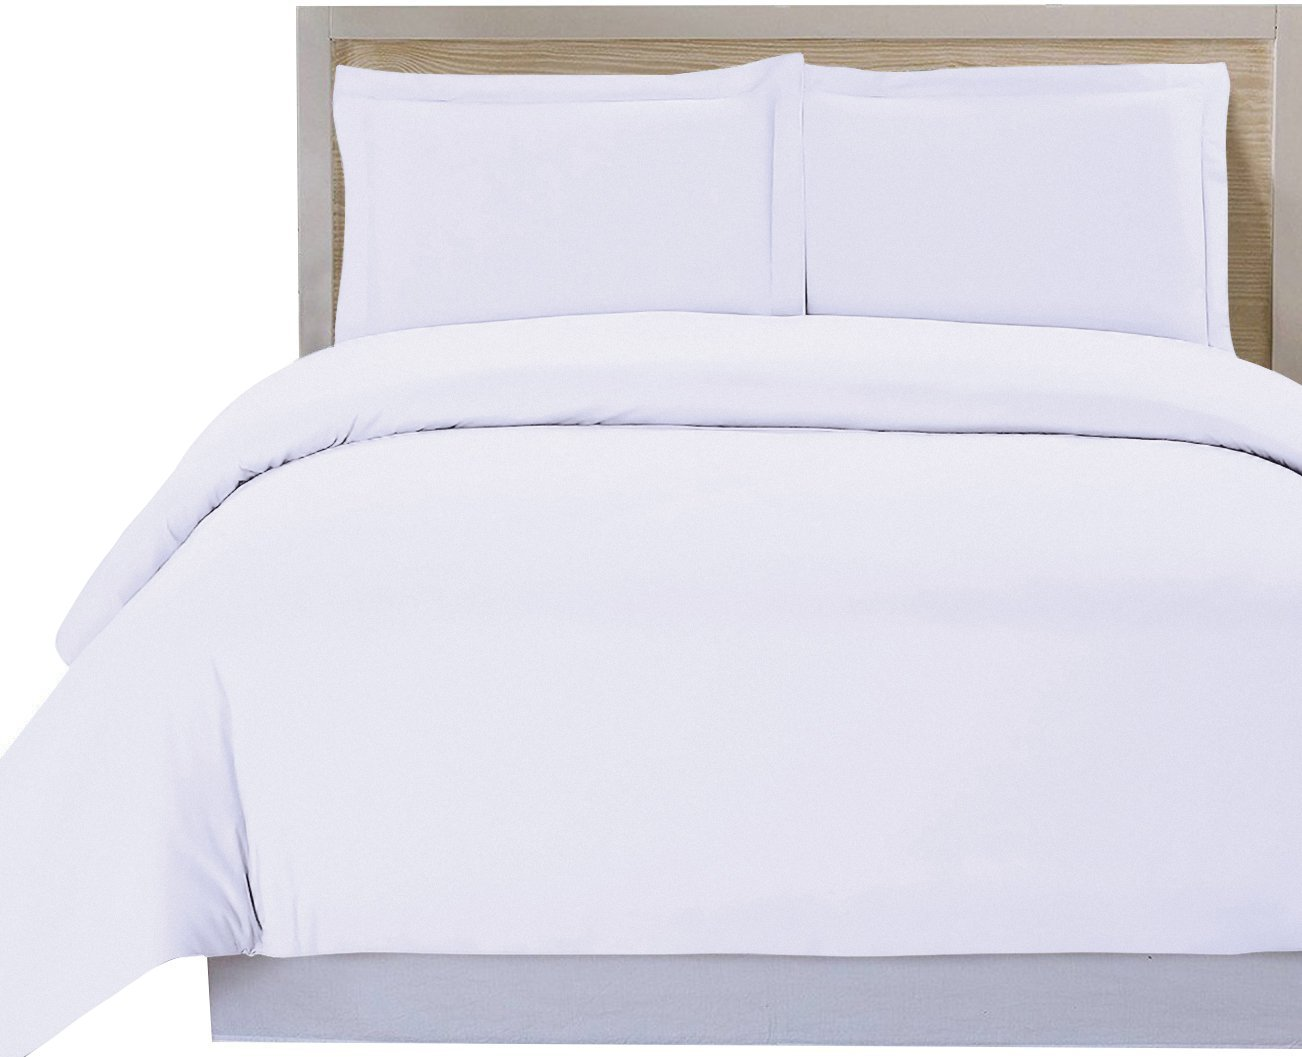 Utopia Bedding 3 Piece Duvet Cover Set (Queen, White) Duvet Cover plus 2 Pillow Shams - Luxury Soft Hotel Quality Wrinkle, Fade, Stain Resistant and Anti-allergic by Utopia Bedding